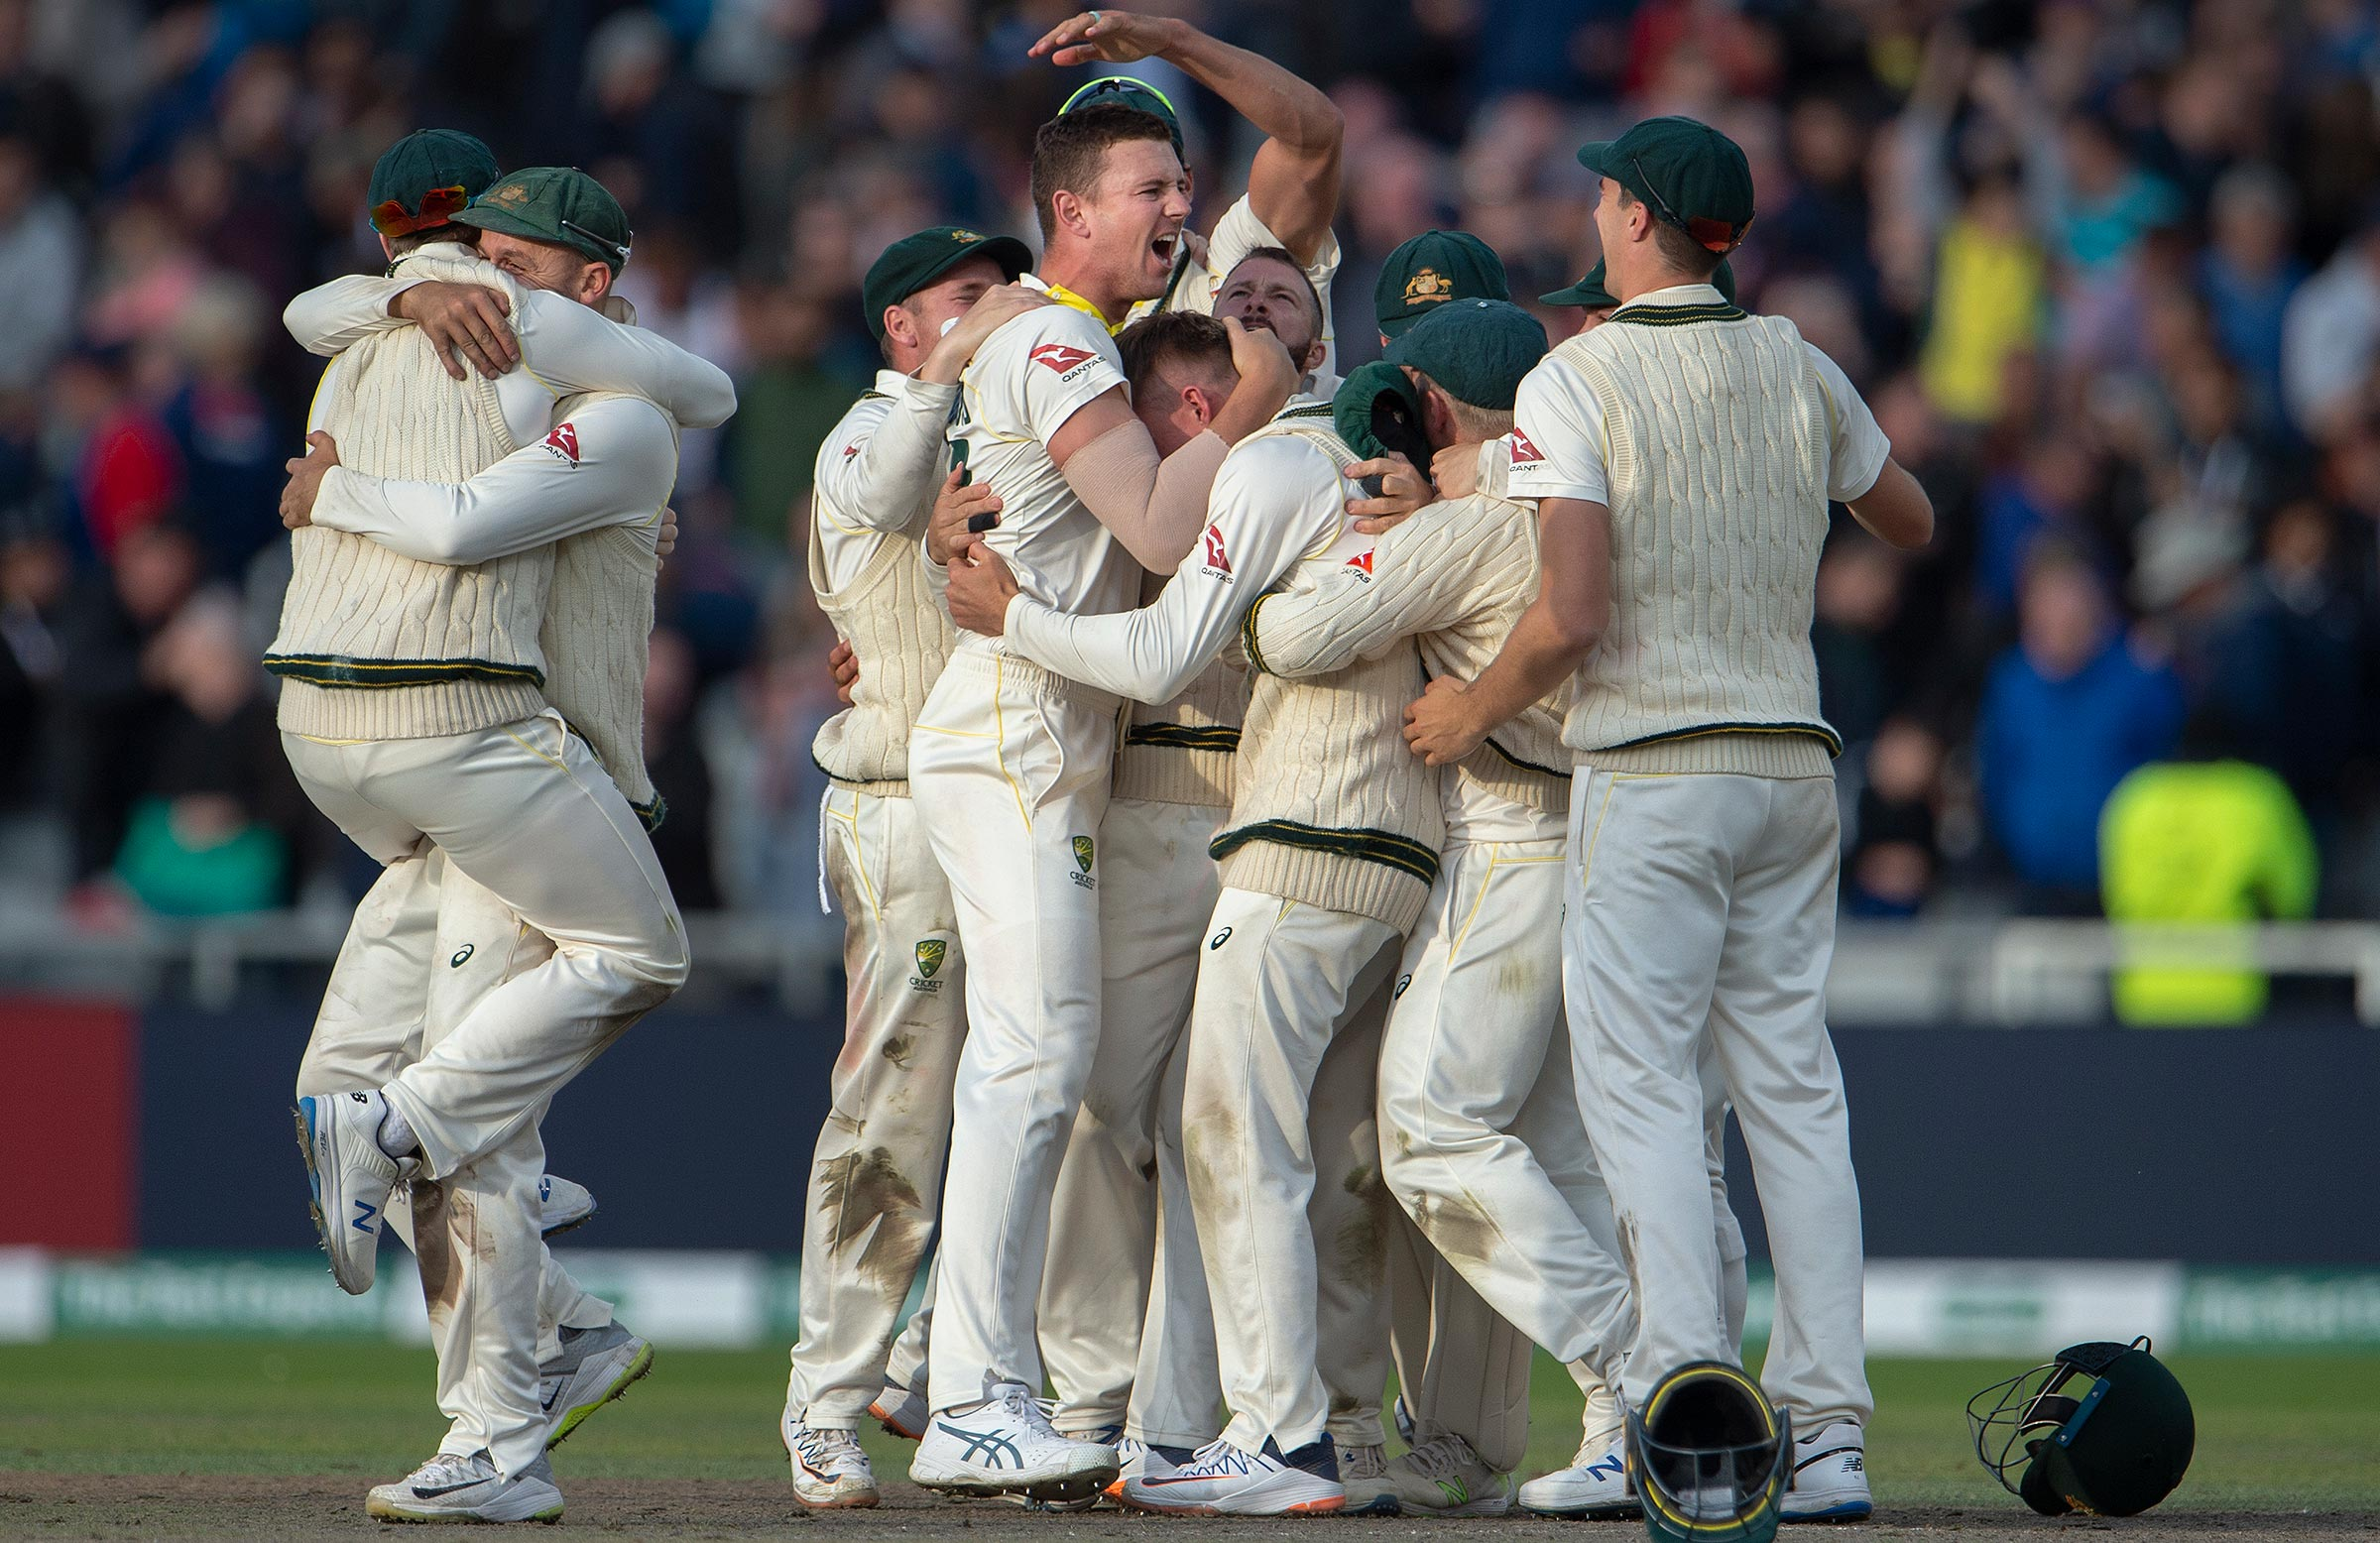 Australia's players embrace after the final wicket at Headingley // Getty